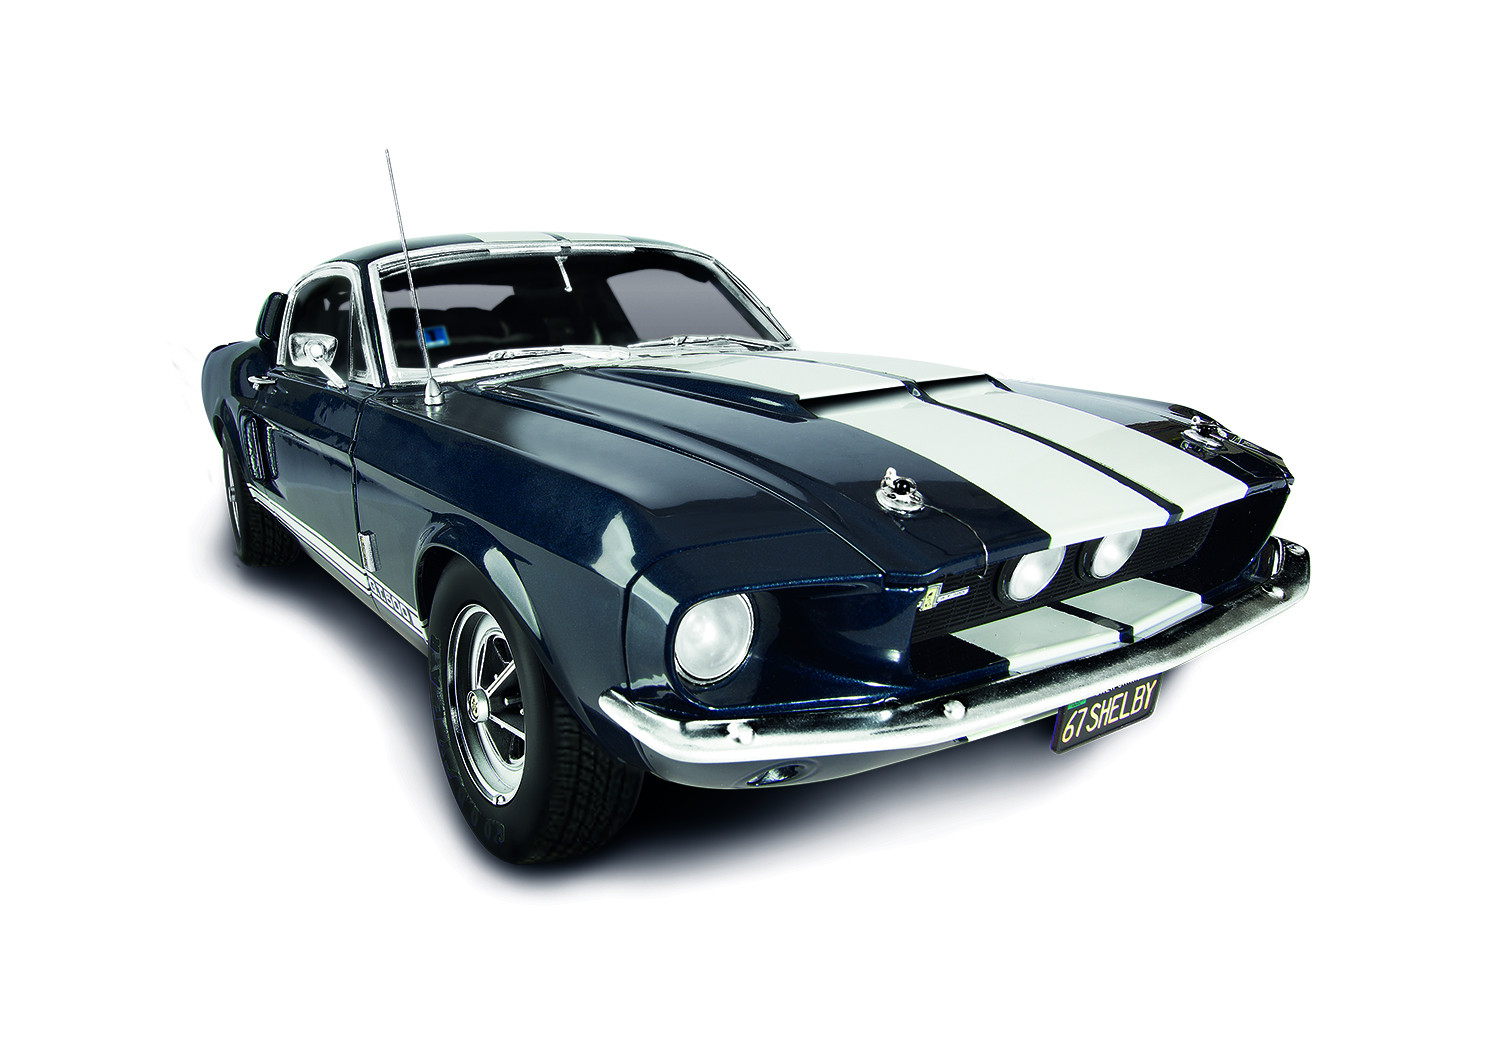 building model planes with Build The Ford Mustang Shelby Model on Detail moreover Build The Ford Mustang Shelby Model besides Kerala House Plans Kerala Home Designs Best Home Design likewise F 14 Tomcat furthermore Boeing 787 Dreamliner.